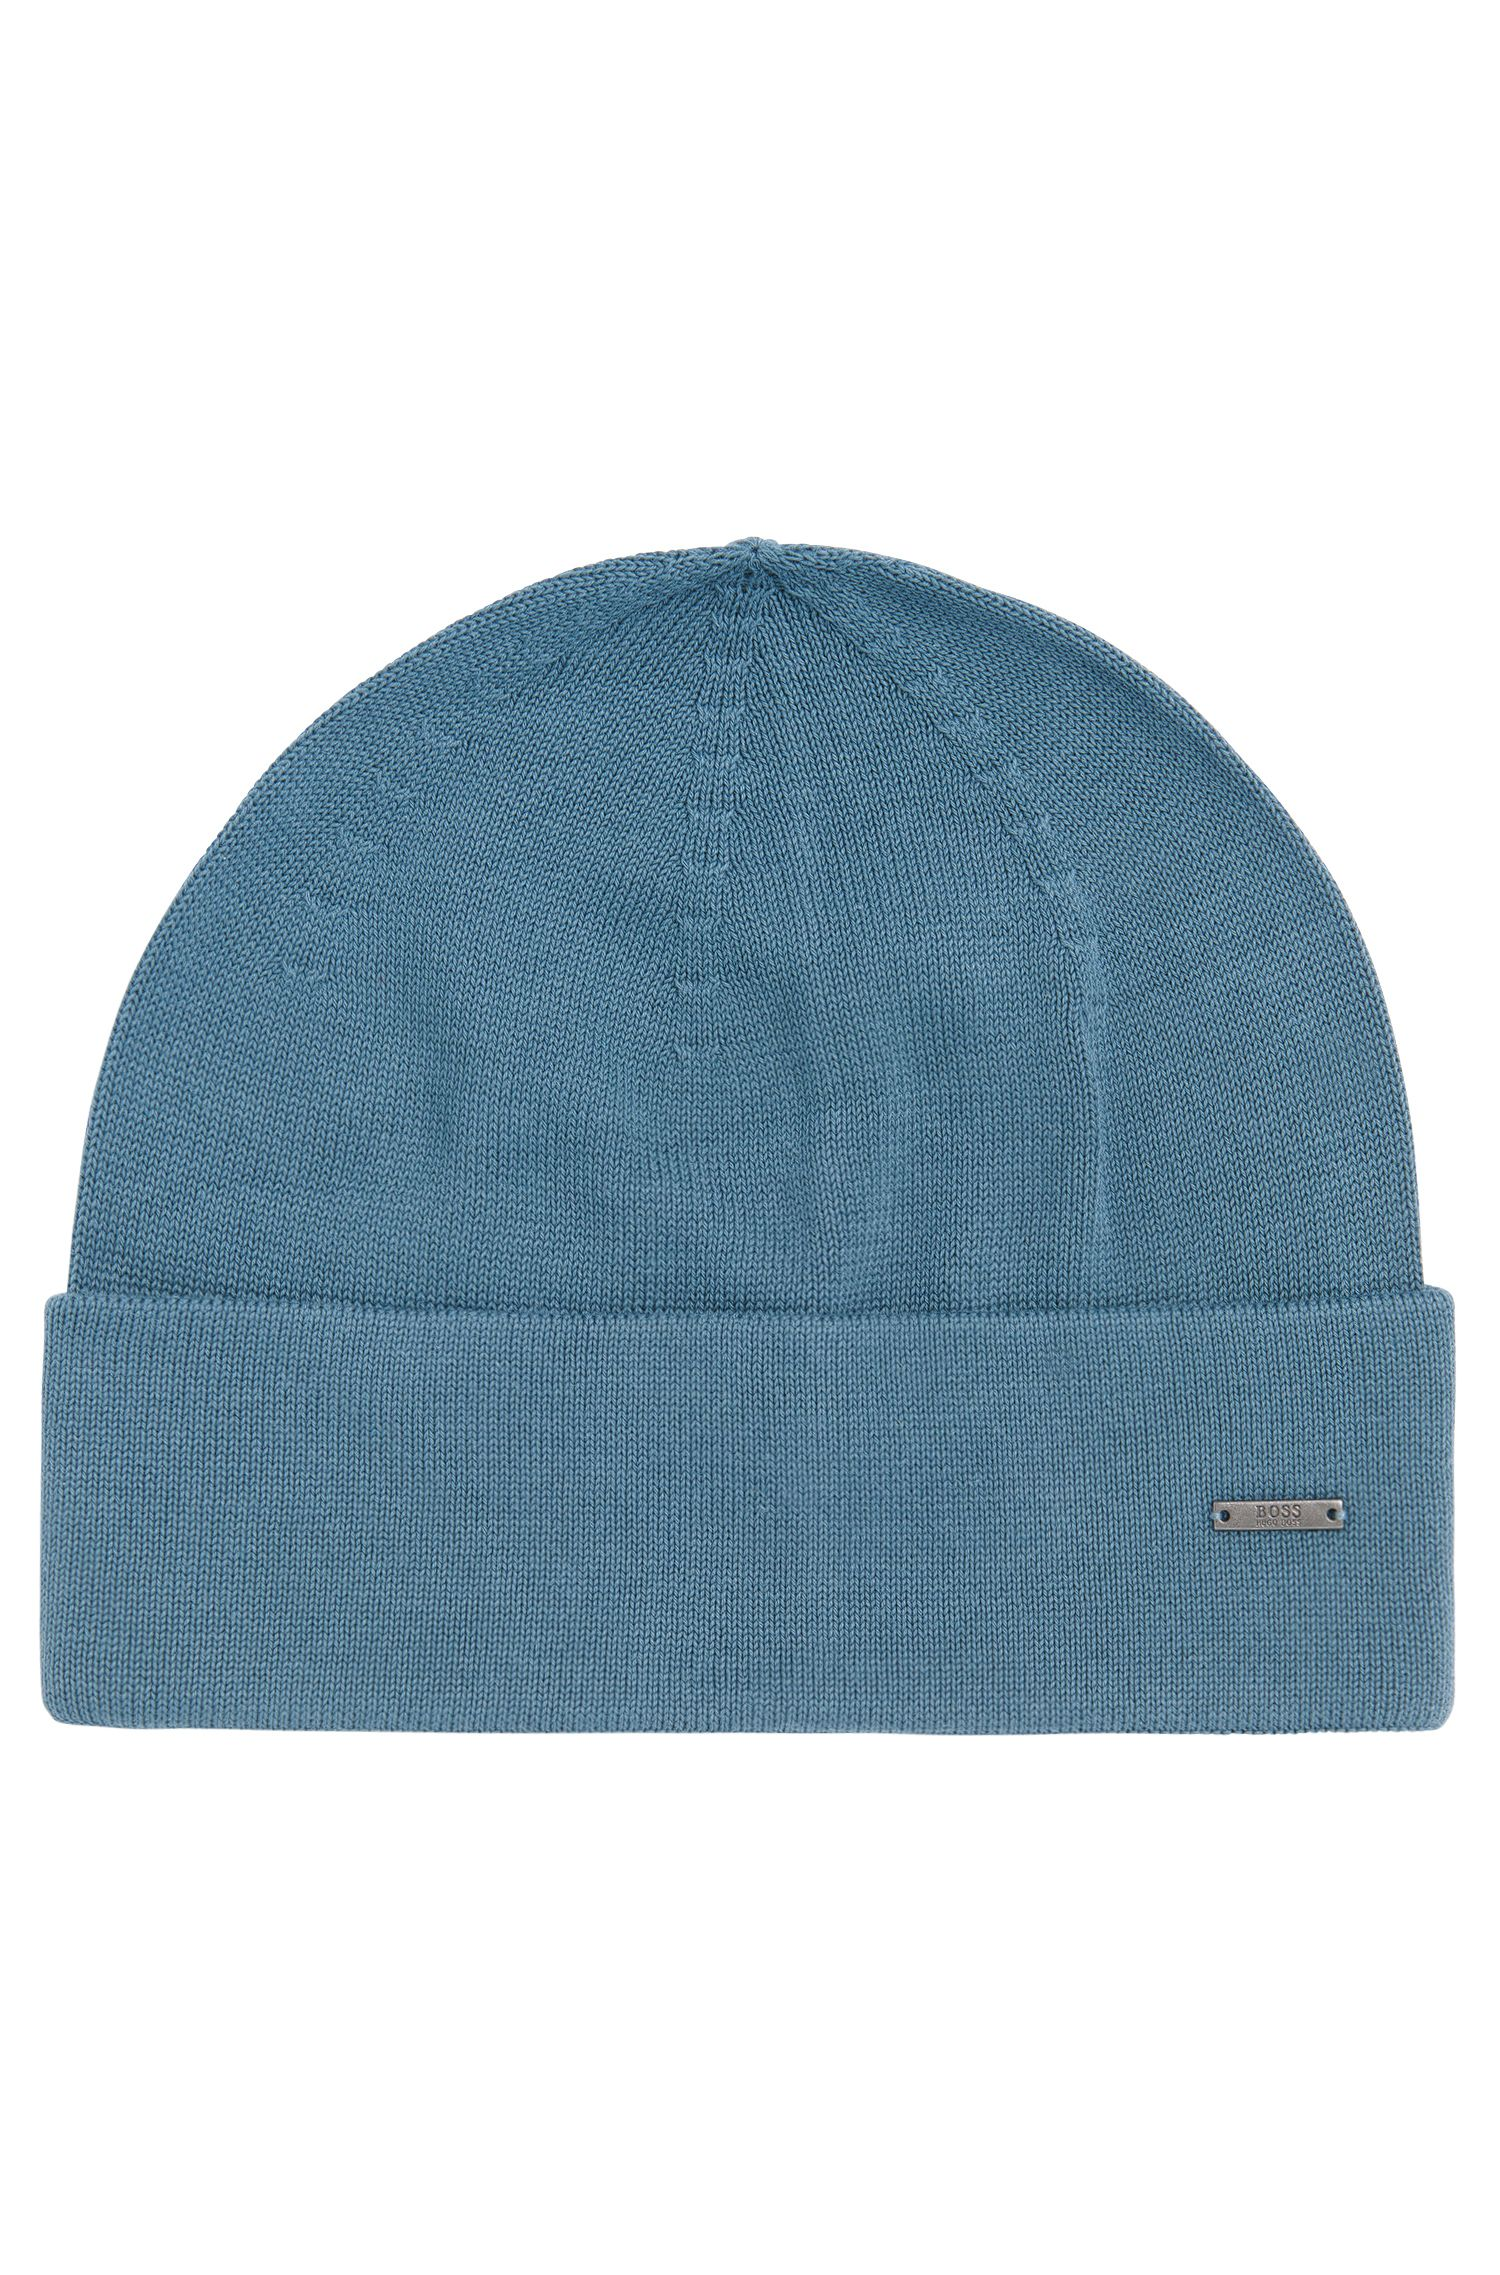 'Hiraldo' | Cotton Knit Beanie Cap